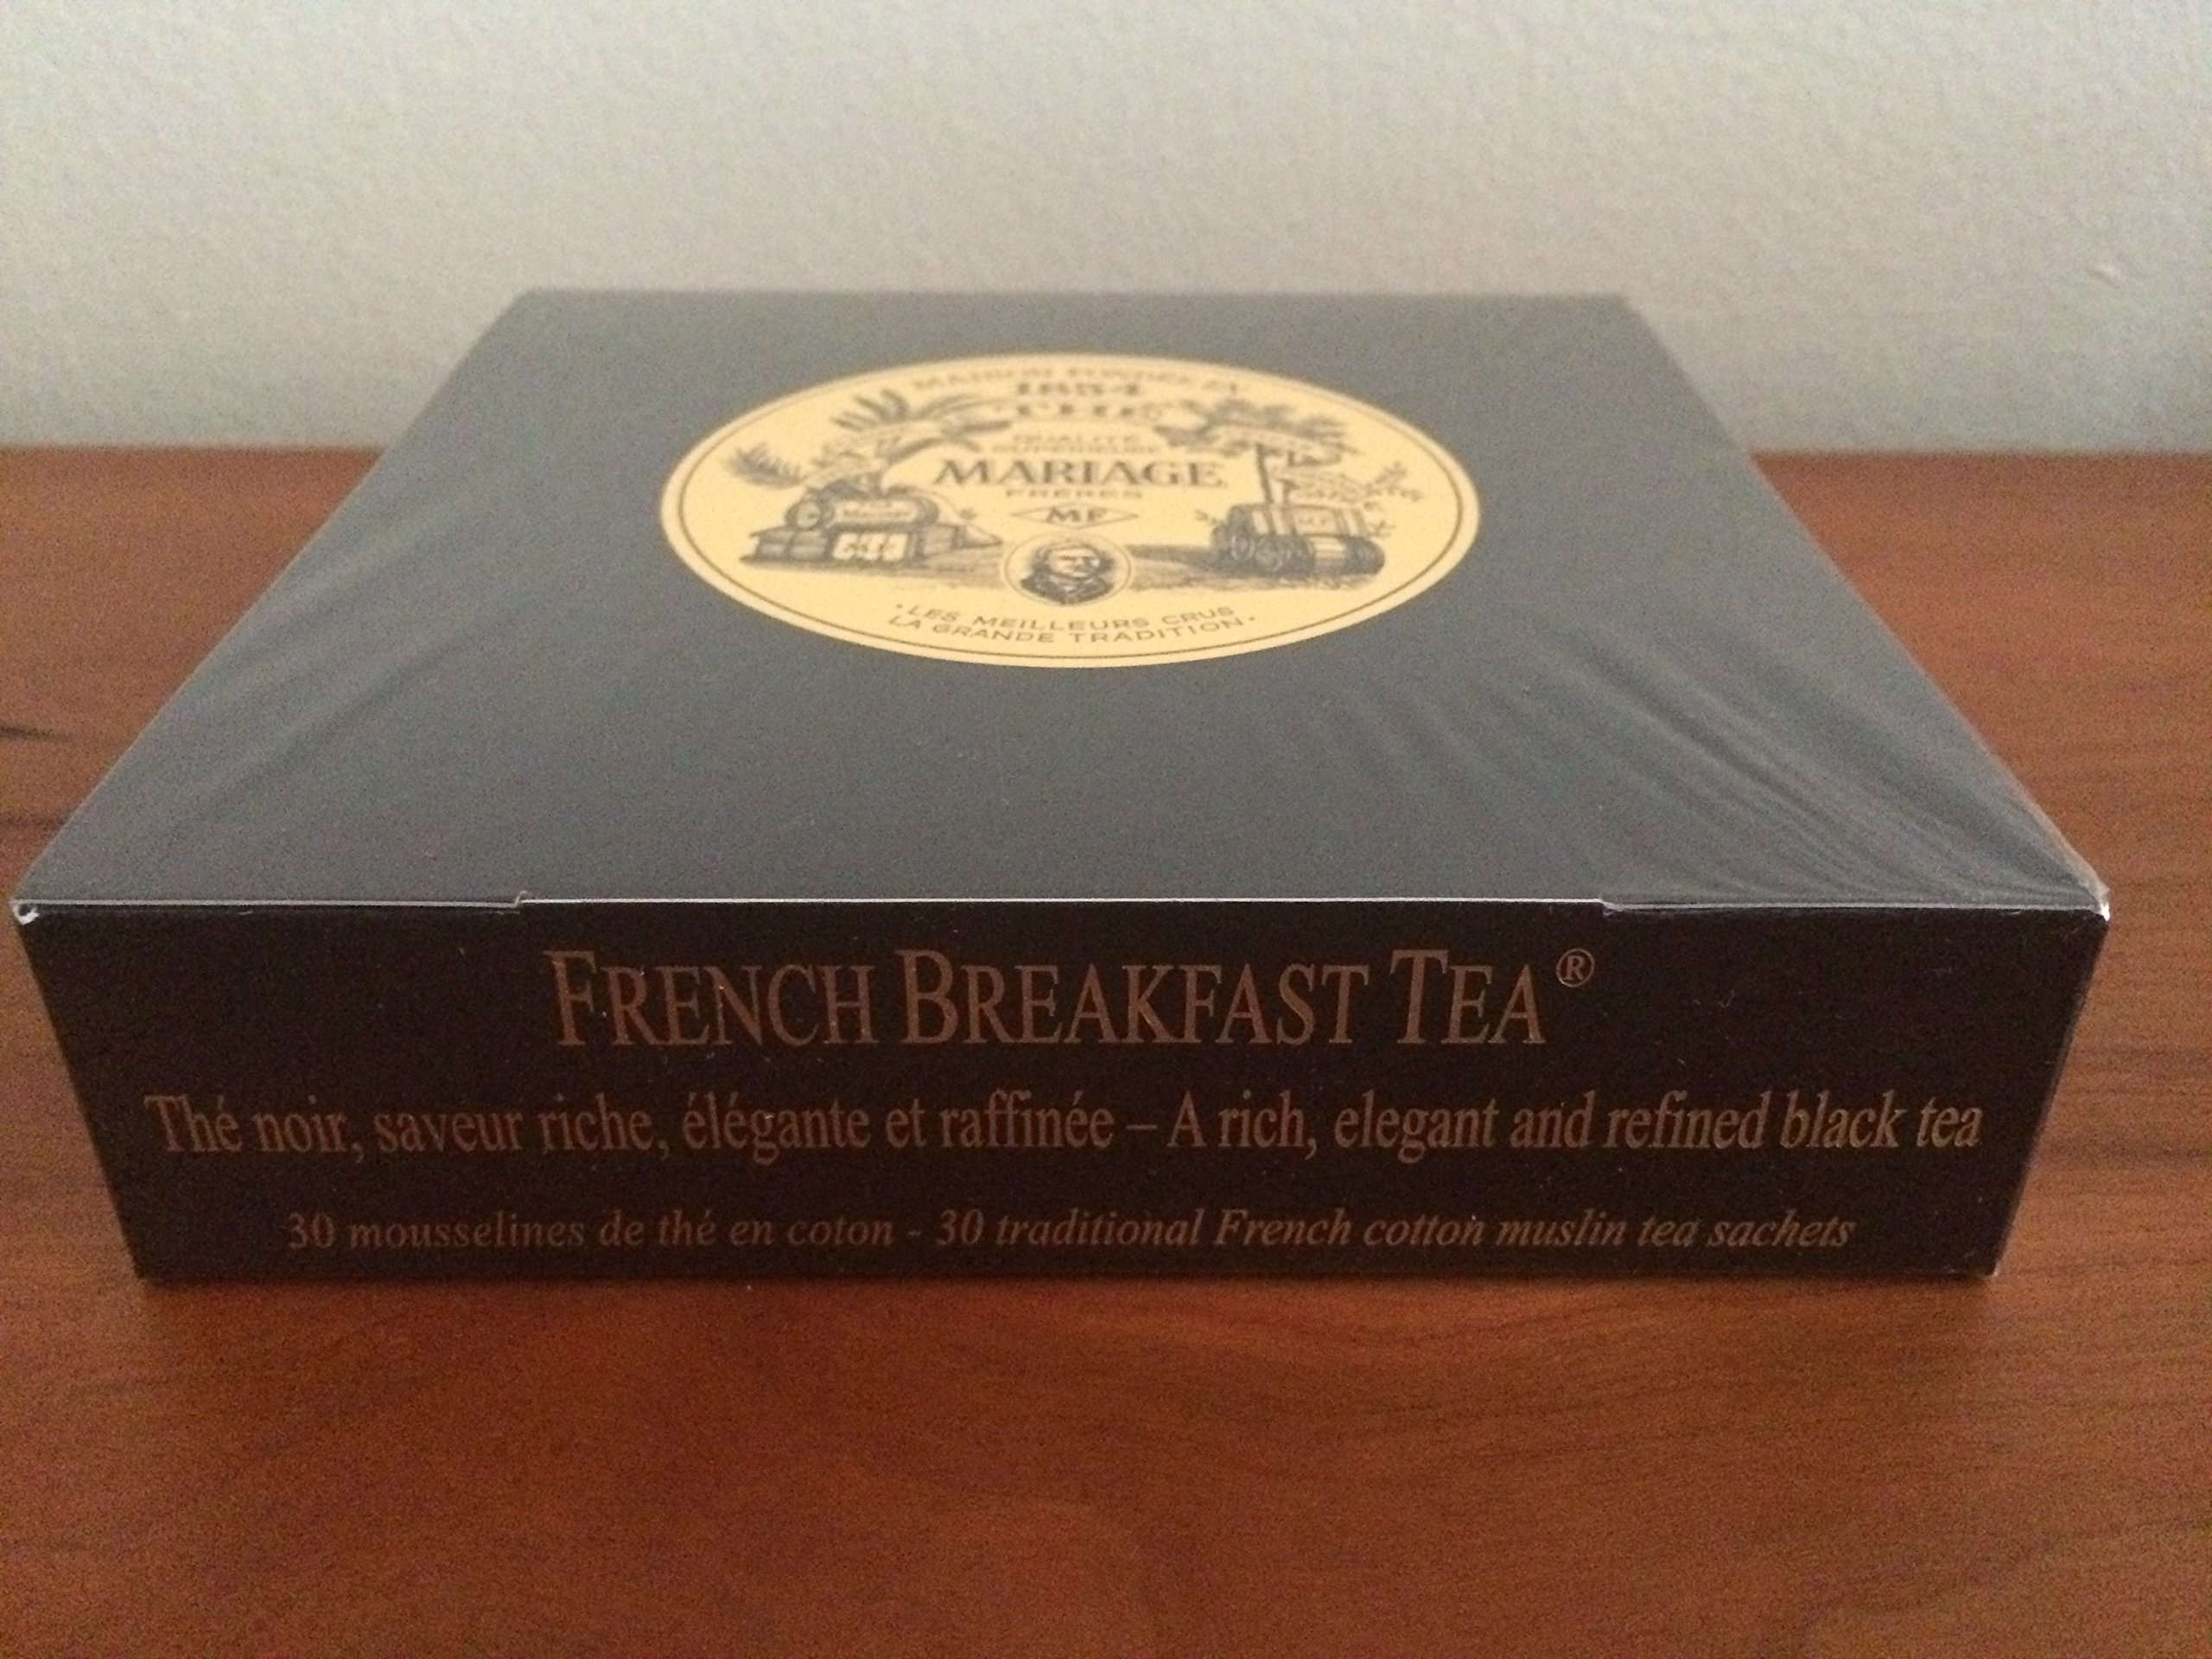 Mariage Freres - French Breakfast Tea - Box of 30 Traditional French Muslin Tea Sachets